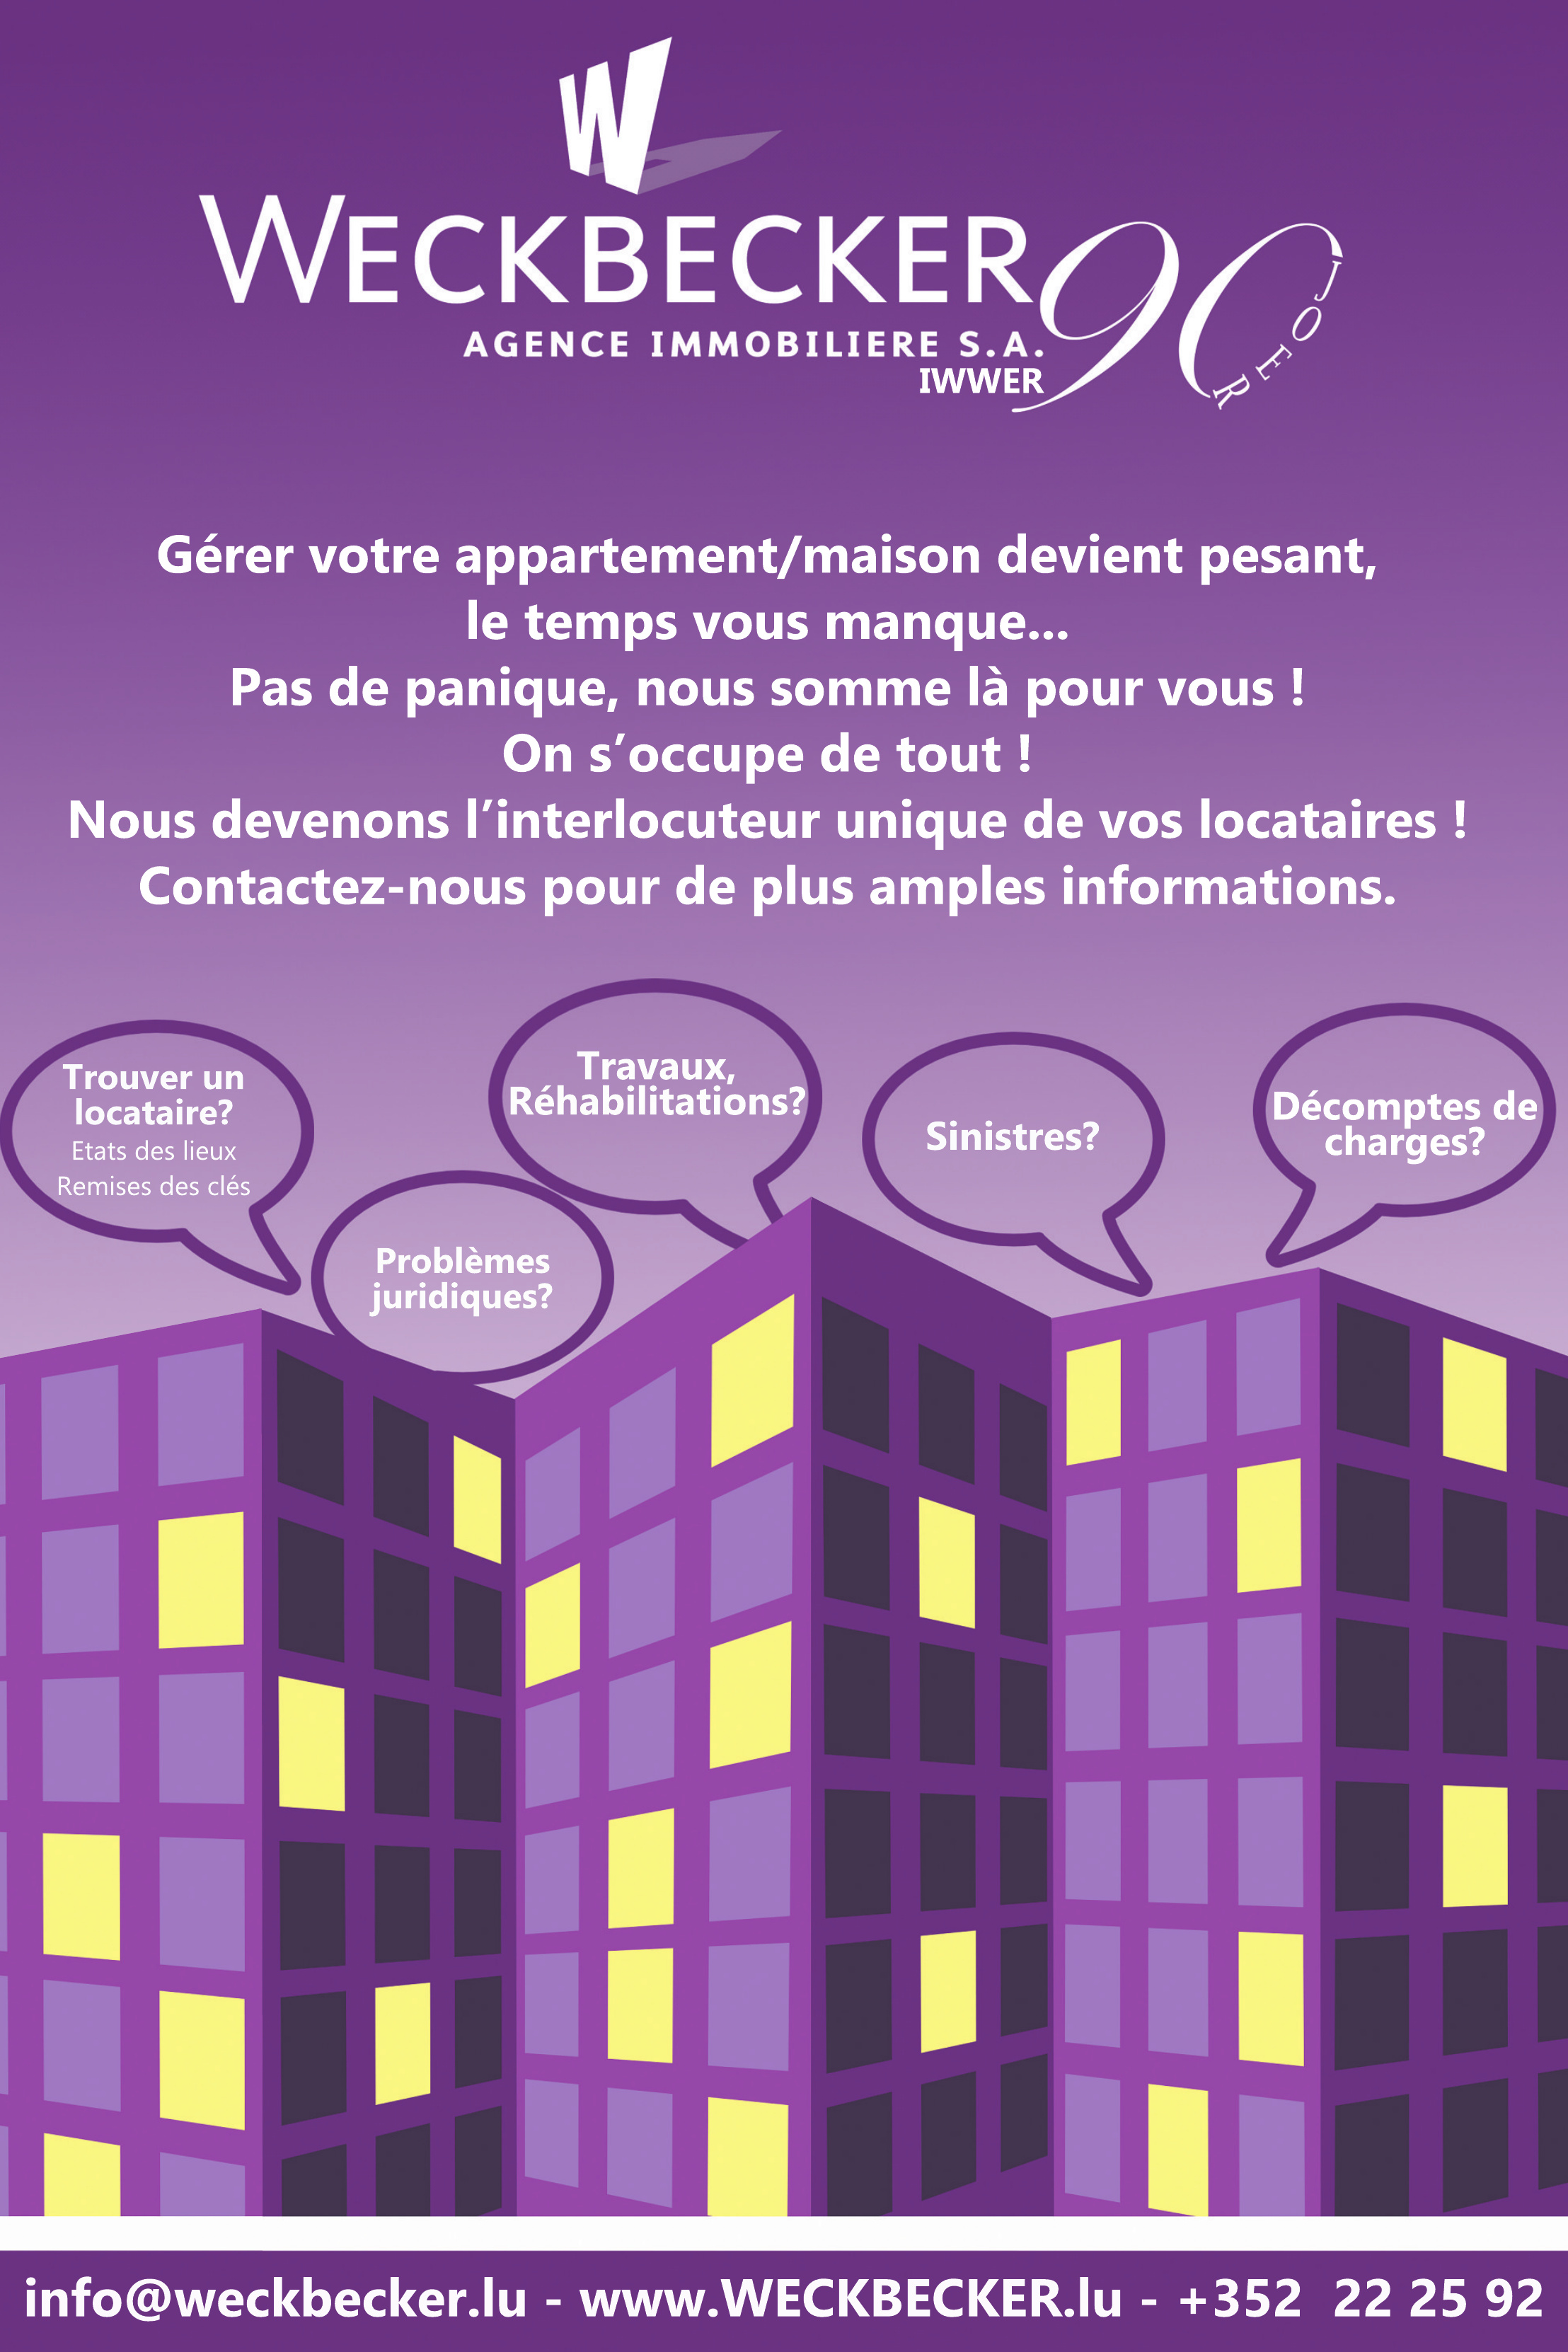 Weckbecker Agence Immobiliere S.A.